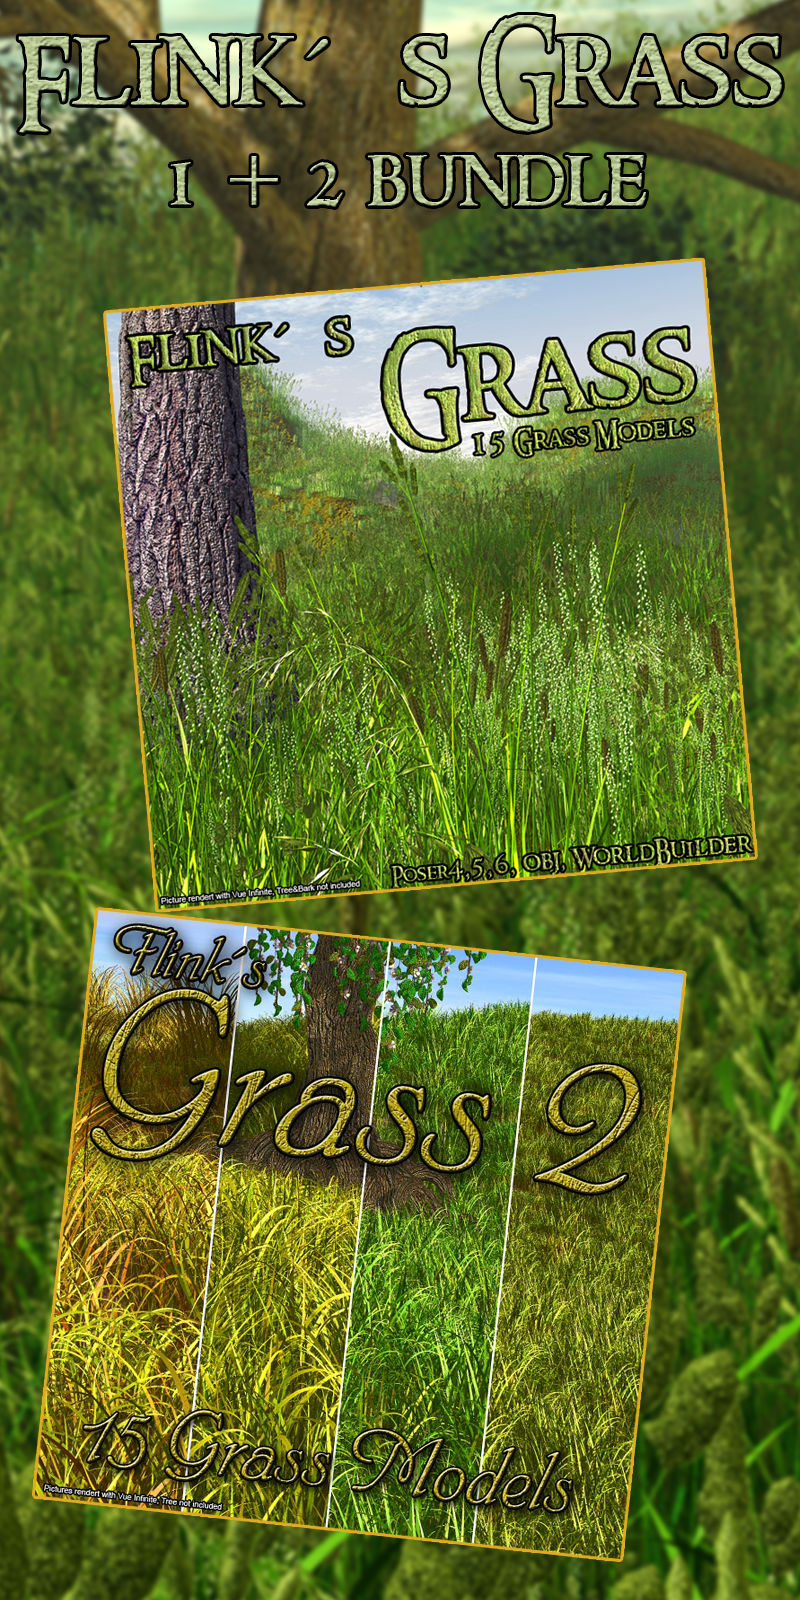 Flinks Grass 1 and 2 Bundle